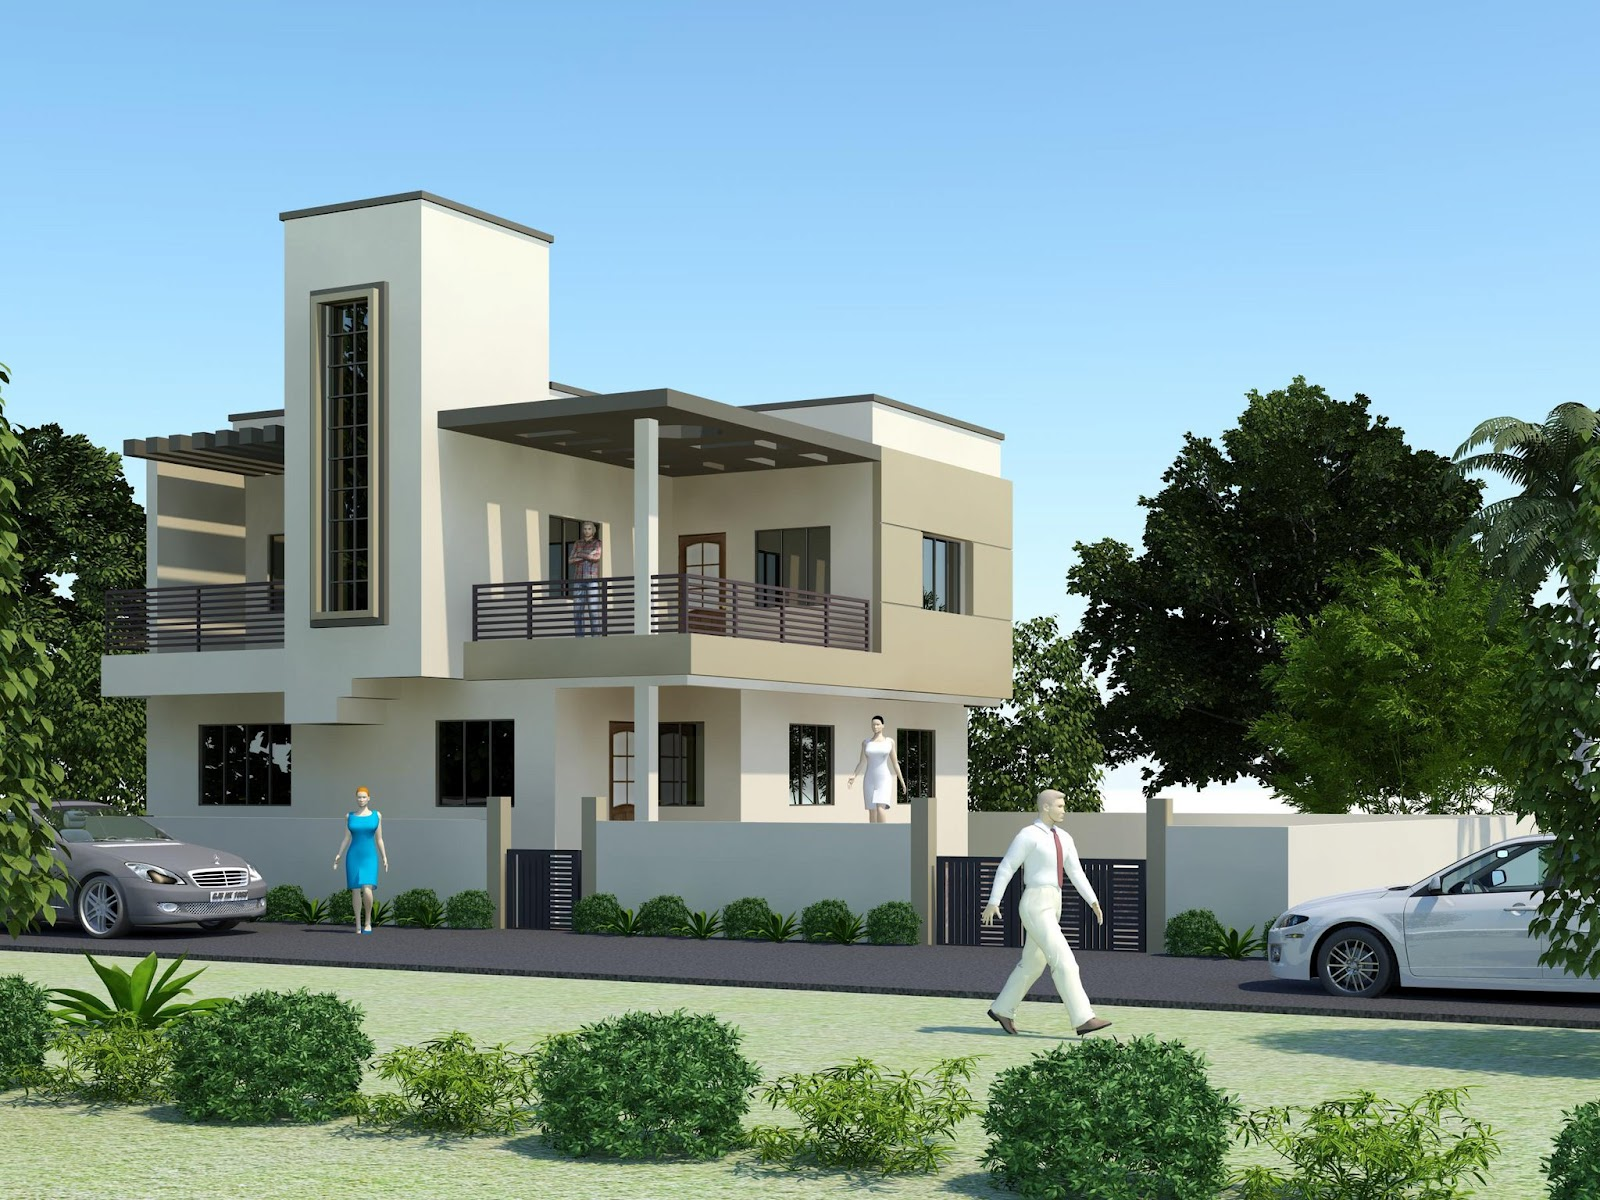 New home designs latest modern homes exterior designs Pictures of exterior home designs in india